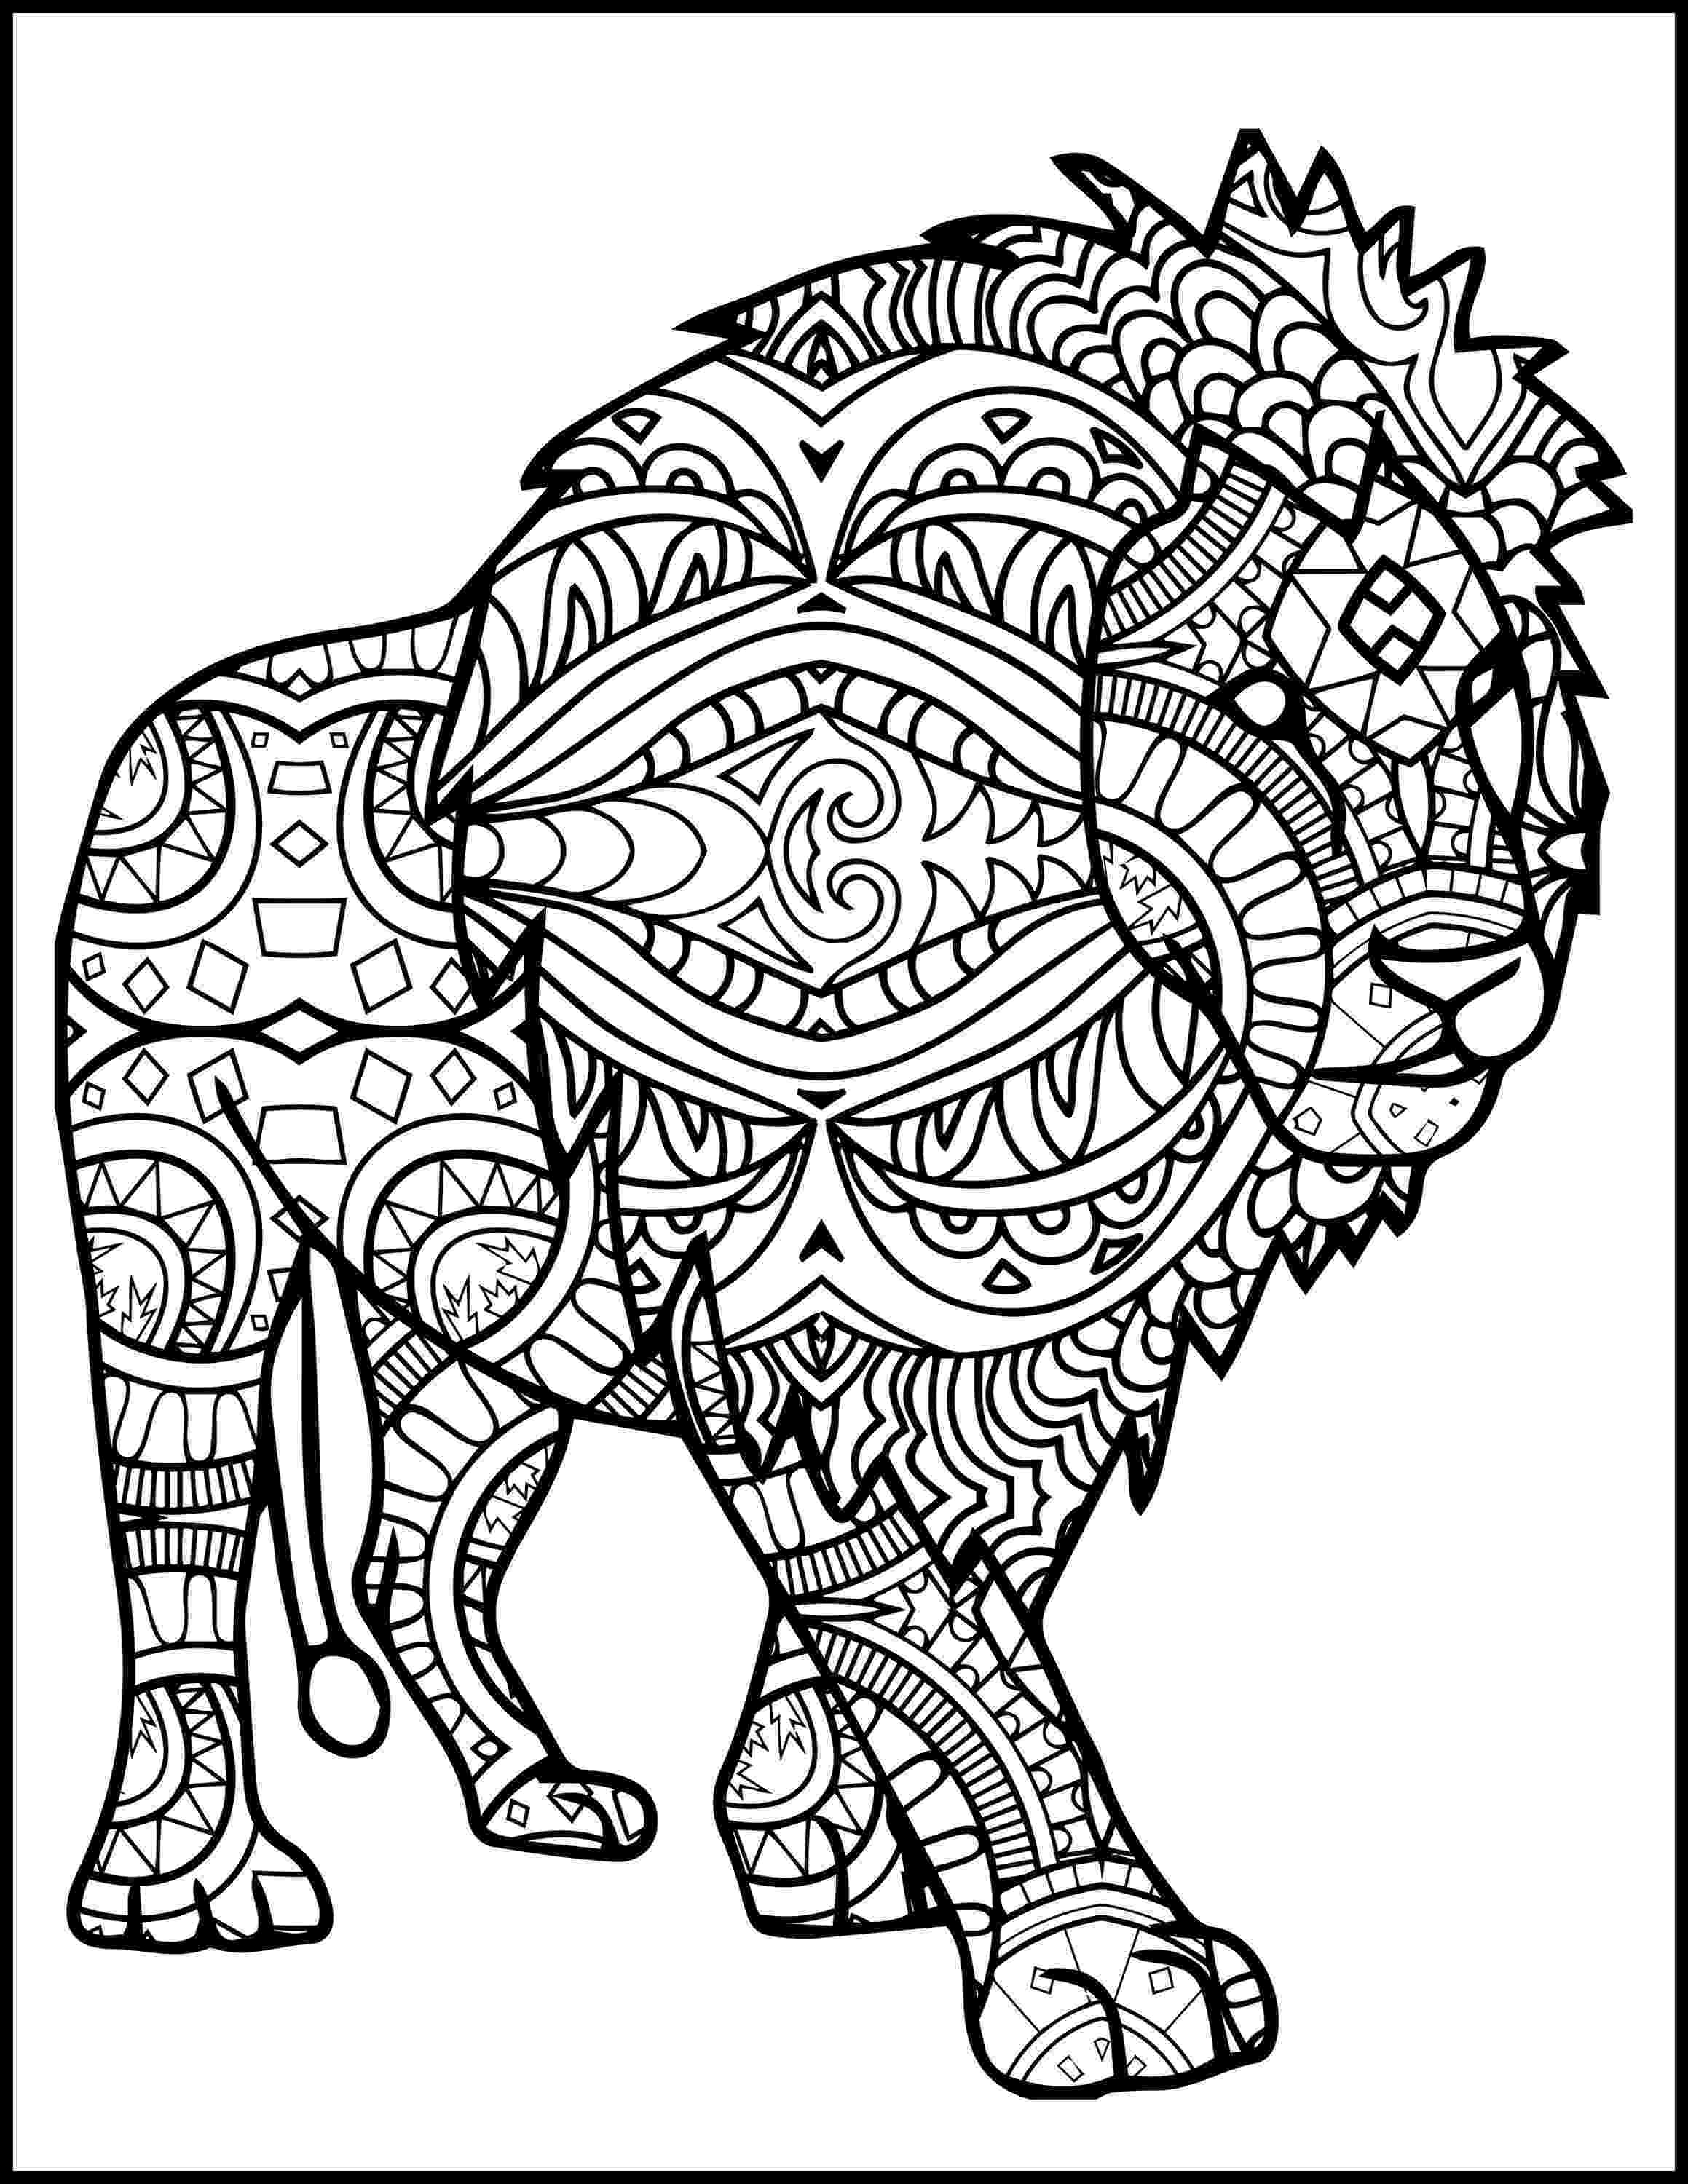 printable coloring pages lion 3 printable pages for coloring for lion lovers coloring etsy coloring pages lion printable